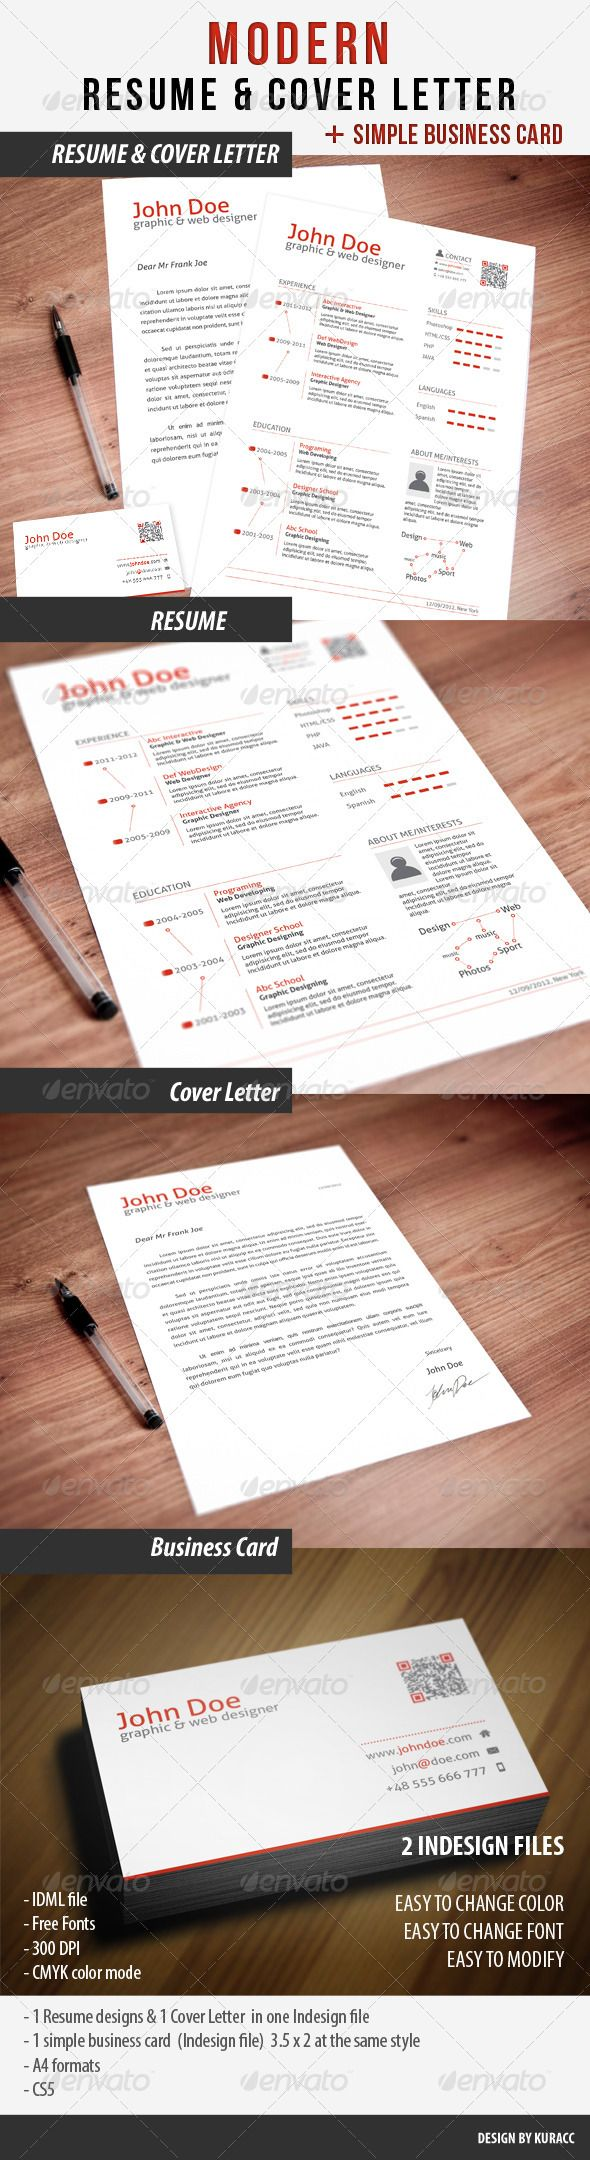 17 best ideas about cover letter format on pinterest